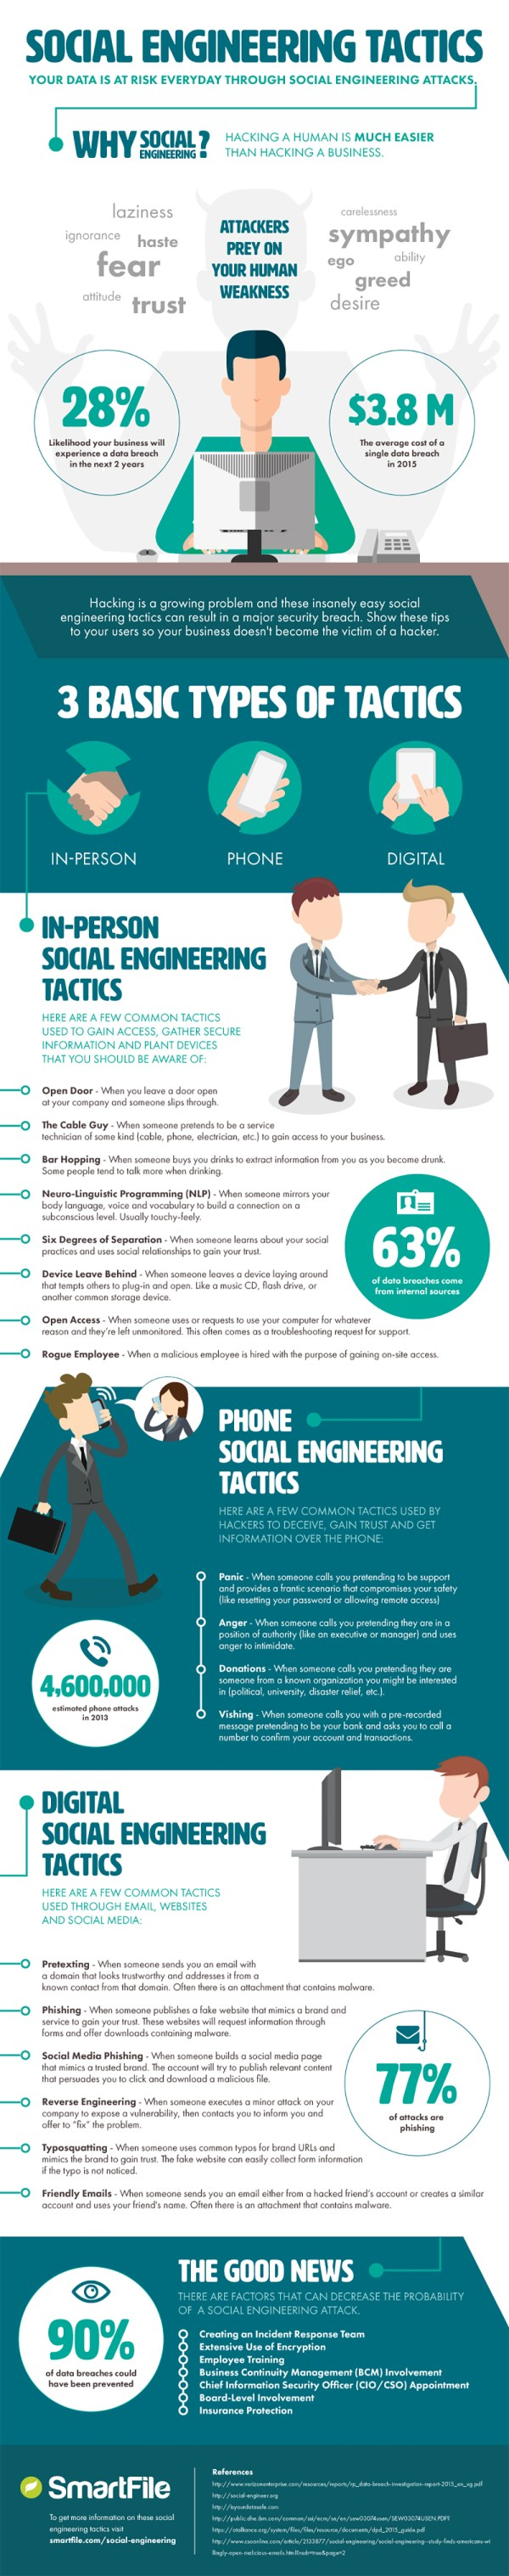 Social Engineering Tactics Infographic Recoil Offgrid